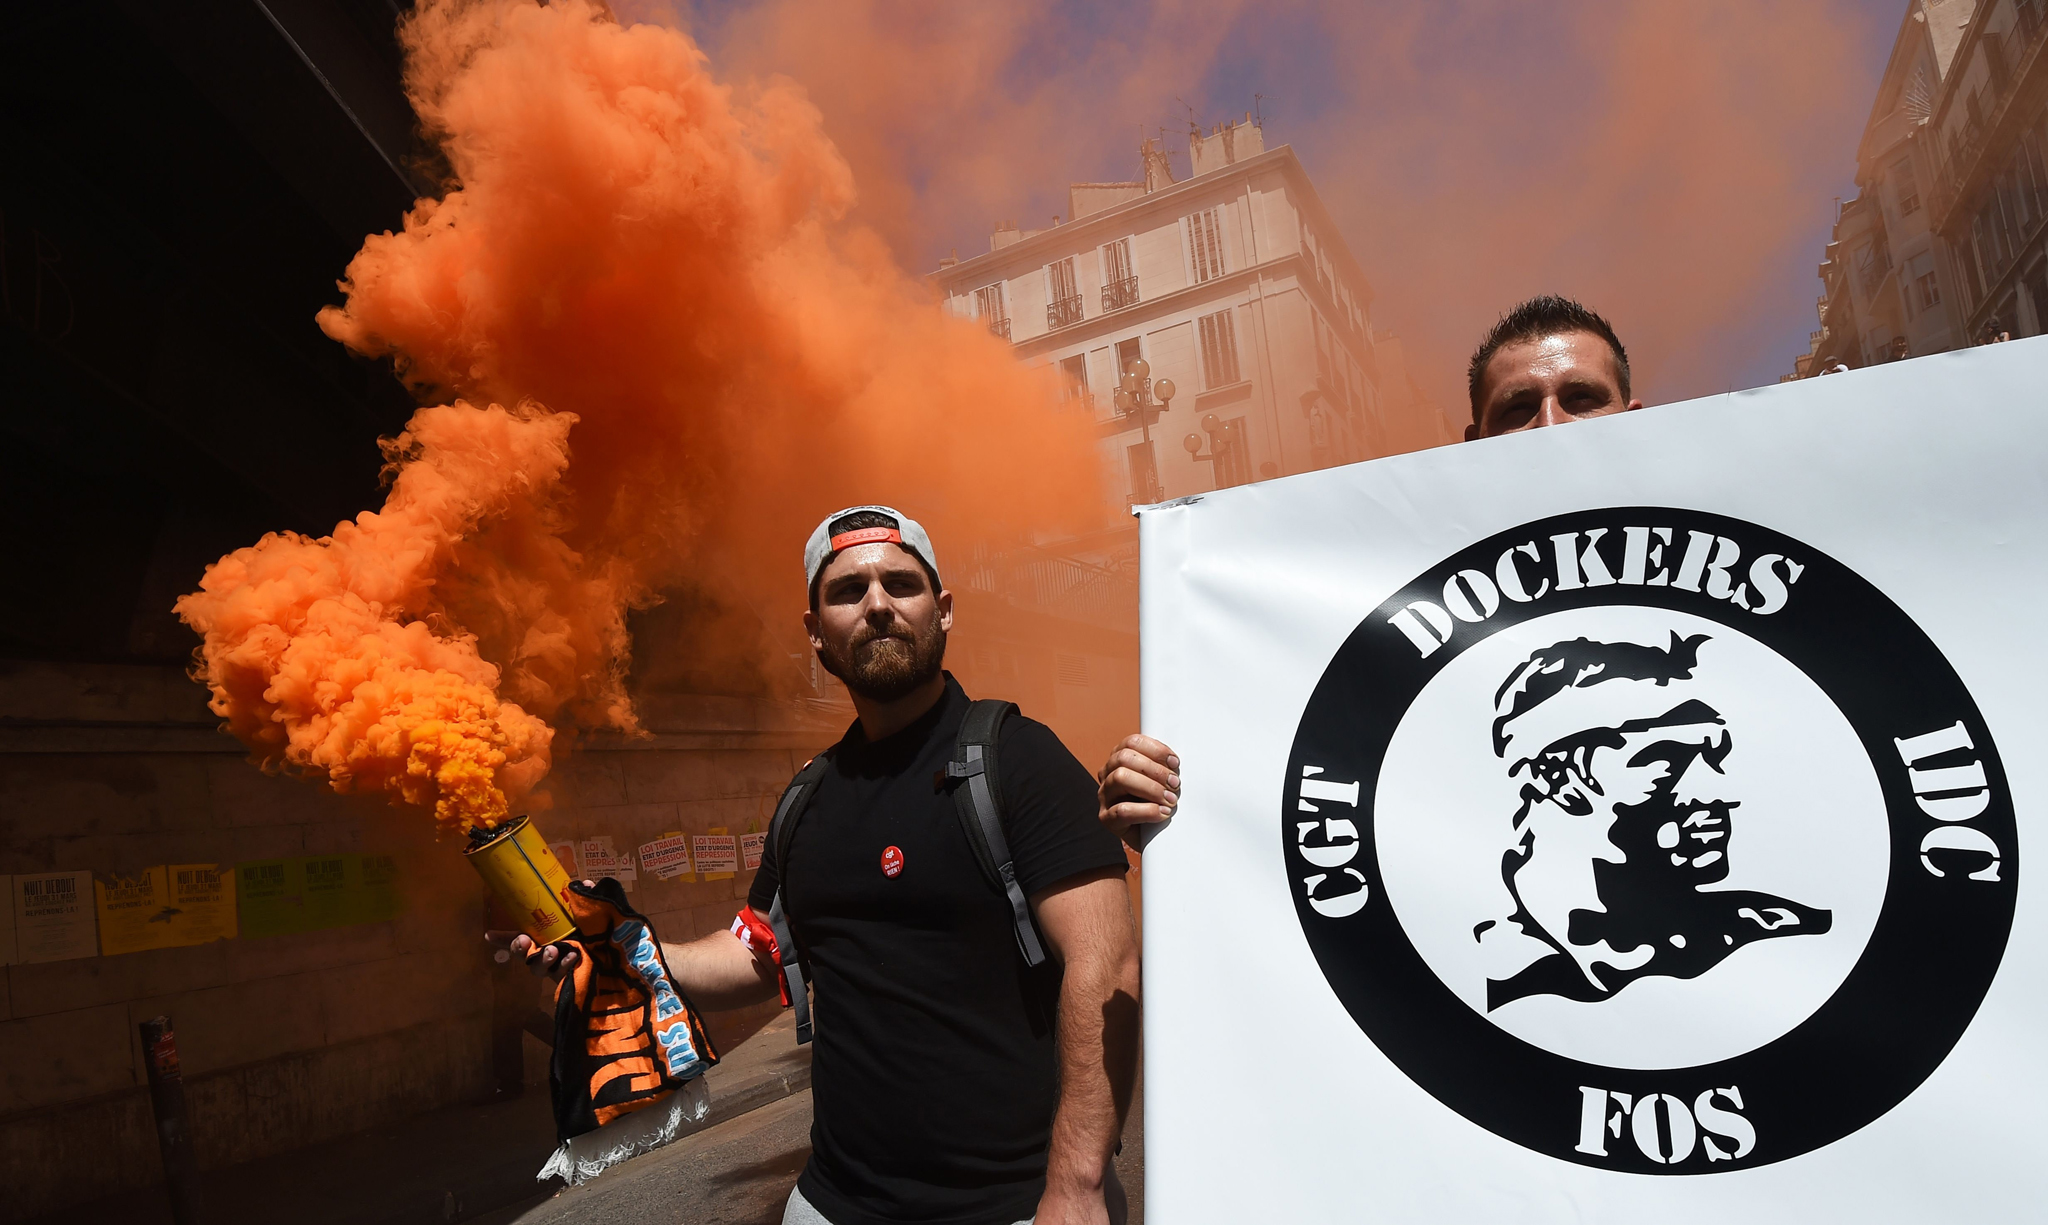 Protestors hold a smoke bomb and a placard of the French General Confederation of Labour (CGT) worker's union of the dockers branch during a demonstration against the French government's planned labour law reforms on June 23, 2016 in Marseille, southern France. Unions are protesting a series of labour market reforms that Valls had to force through parliament in May to avoid a vote, even after the bill was significantly watered down. However after more than three months of protests and strikes over the legislation, neither side is willing to budge. / AFP PHOTO / ANNE-CHRISTINE POUJOULATANNE-CHRISTINE POUJOULAT/AFP/Getty Images